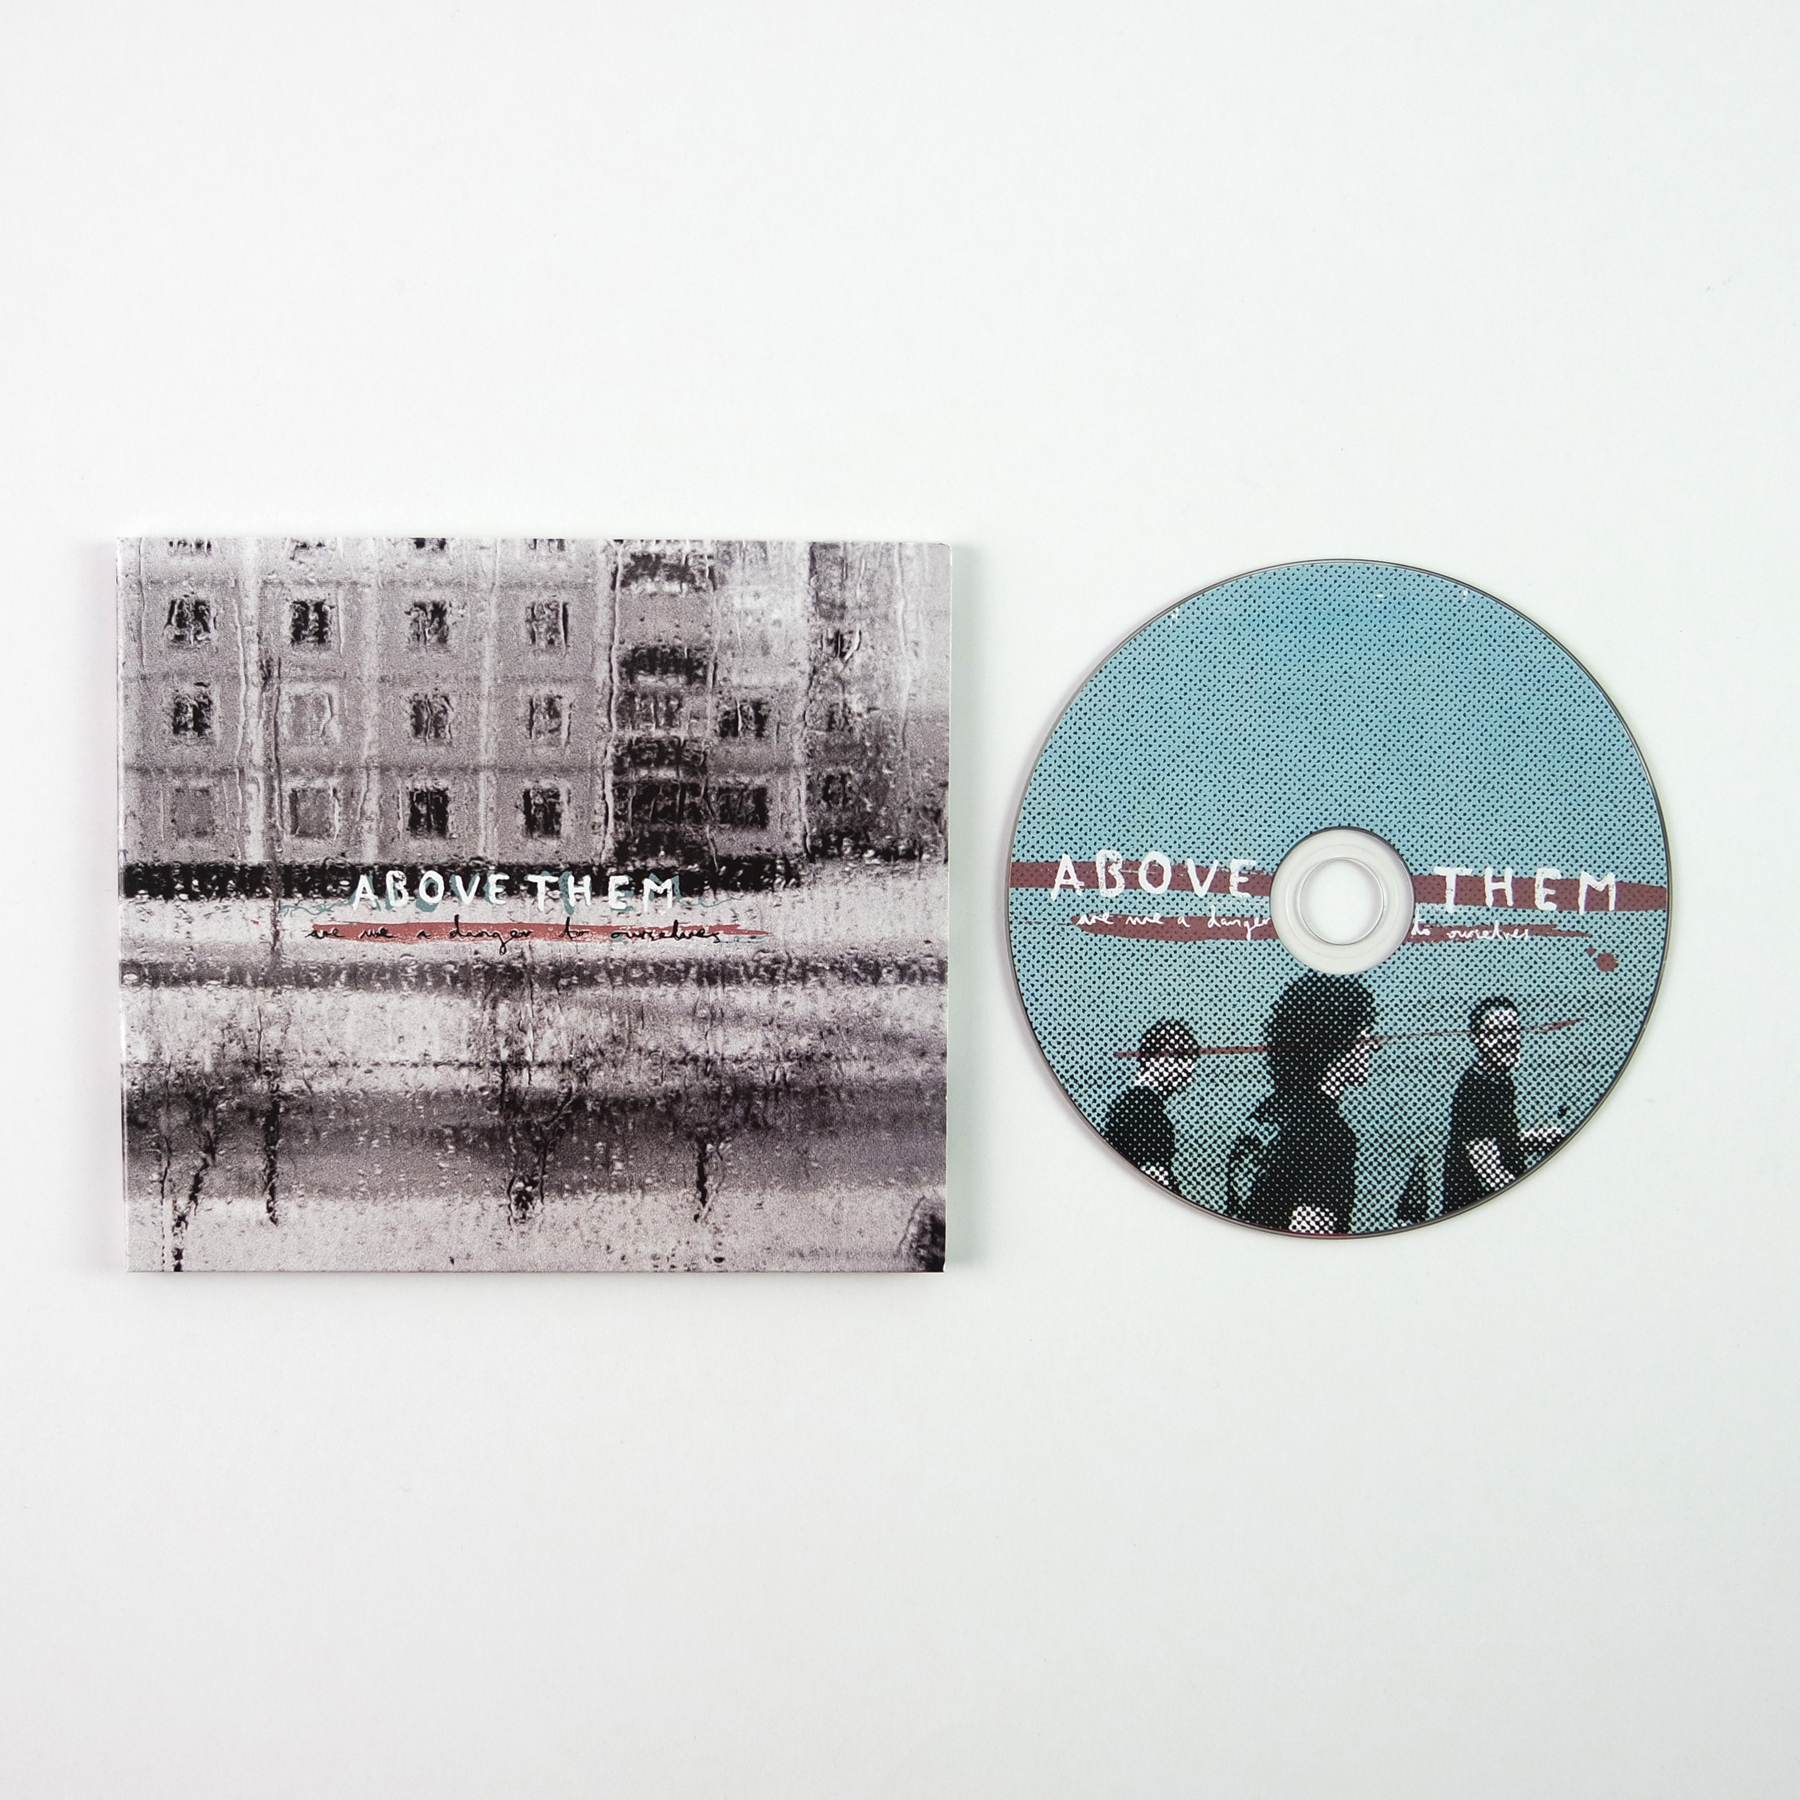 Above Them - Are We A Danger To Ourselves CD / LP